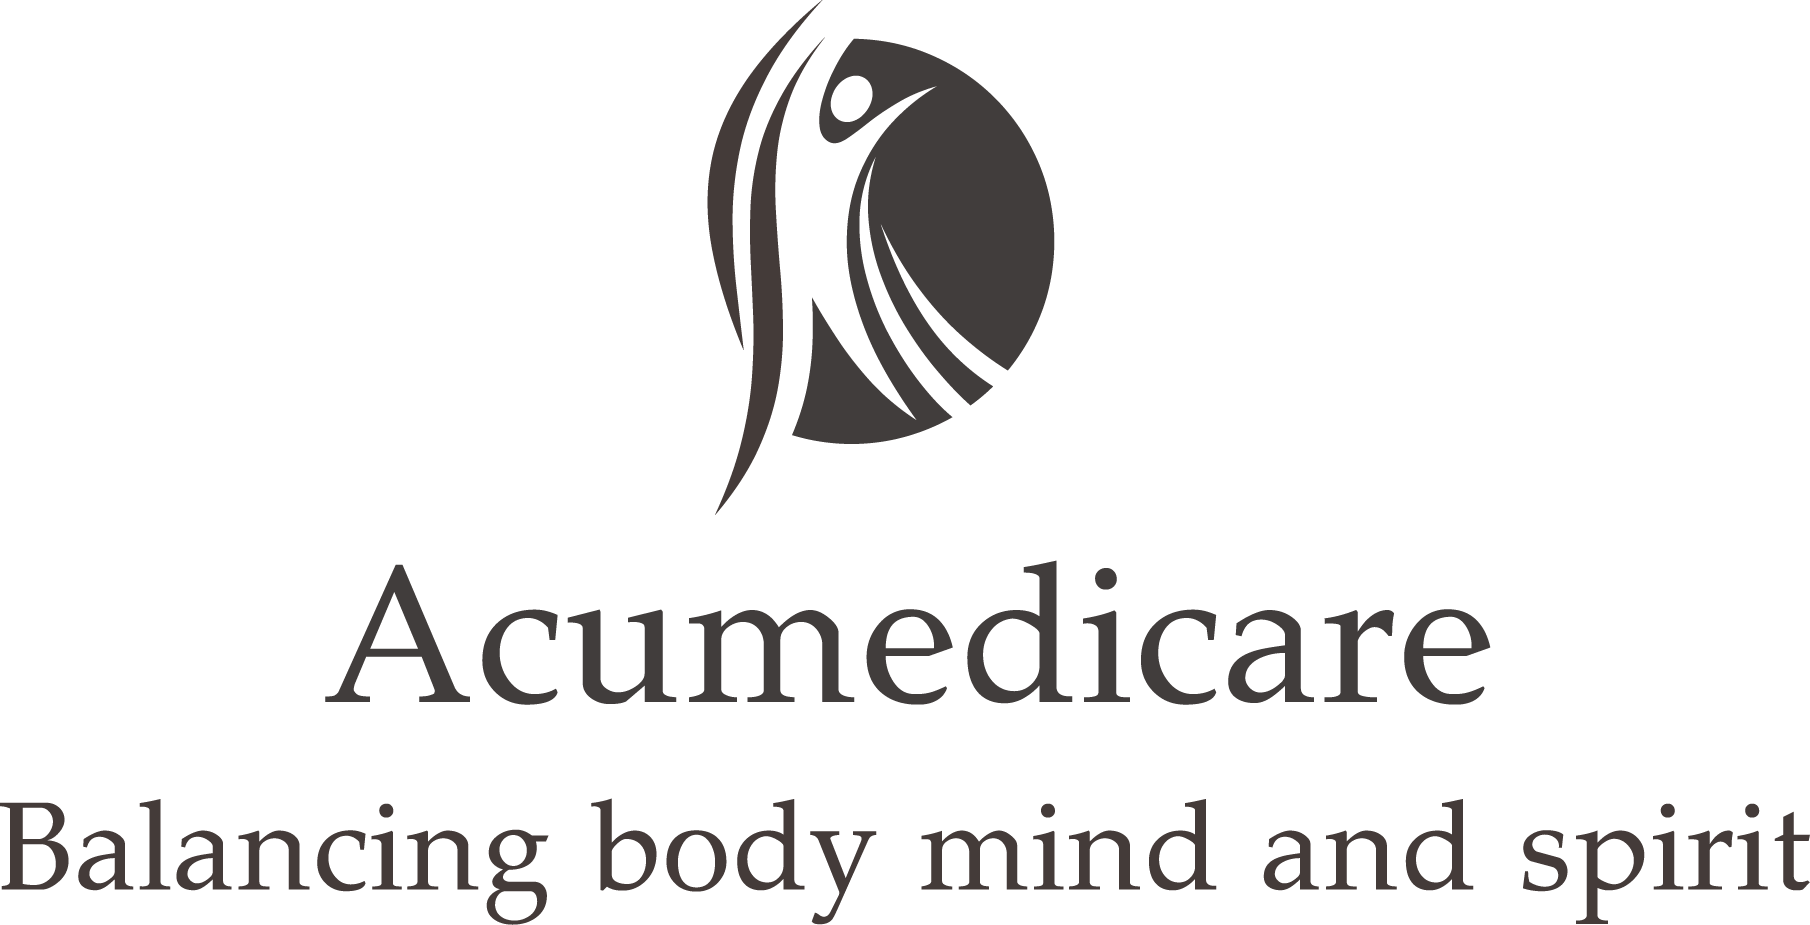 Acupuncture Specialist In London - Acumedicare